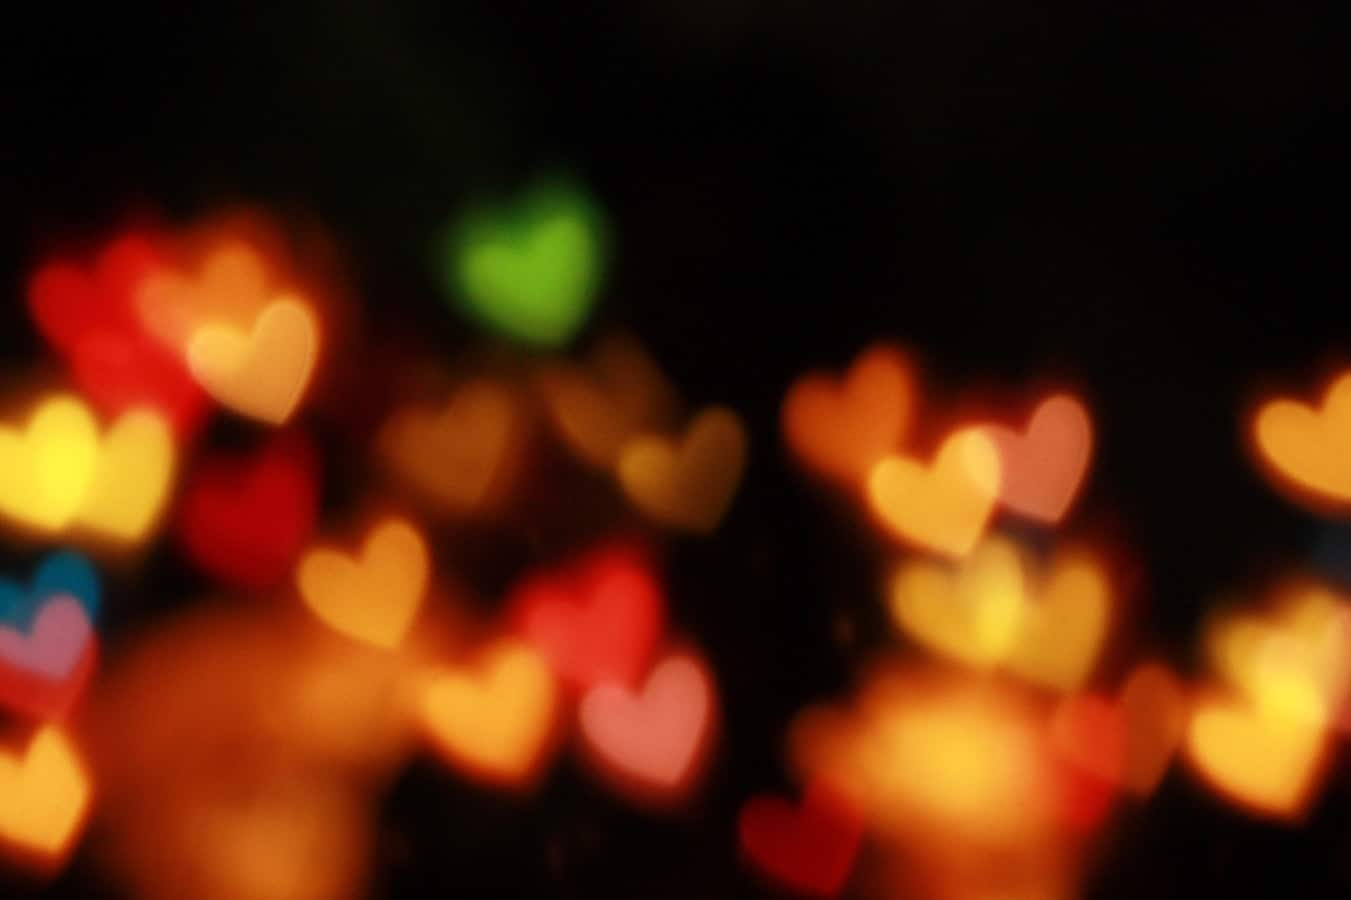 Love heart shaped lights glowing amber in the dark